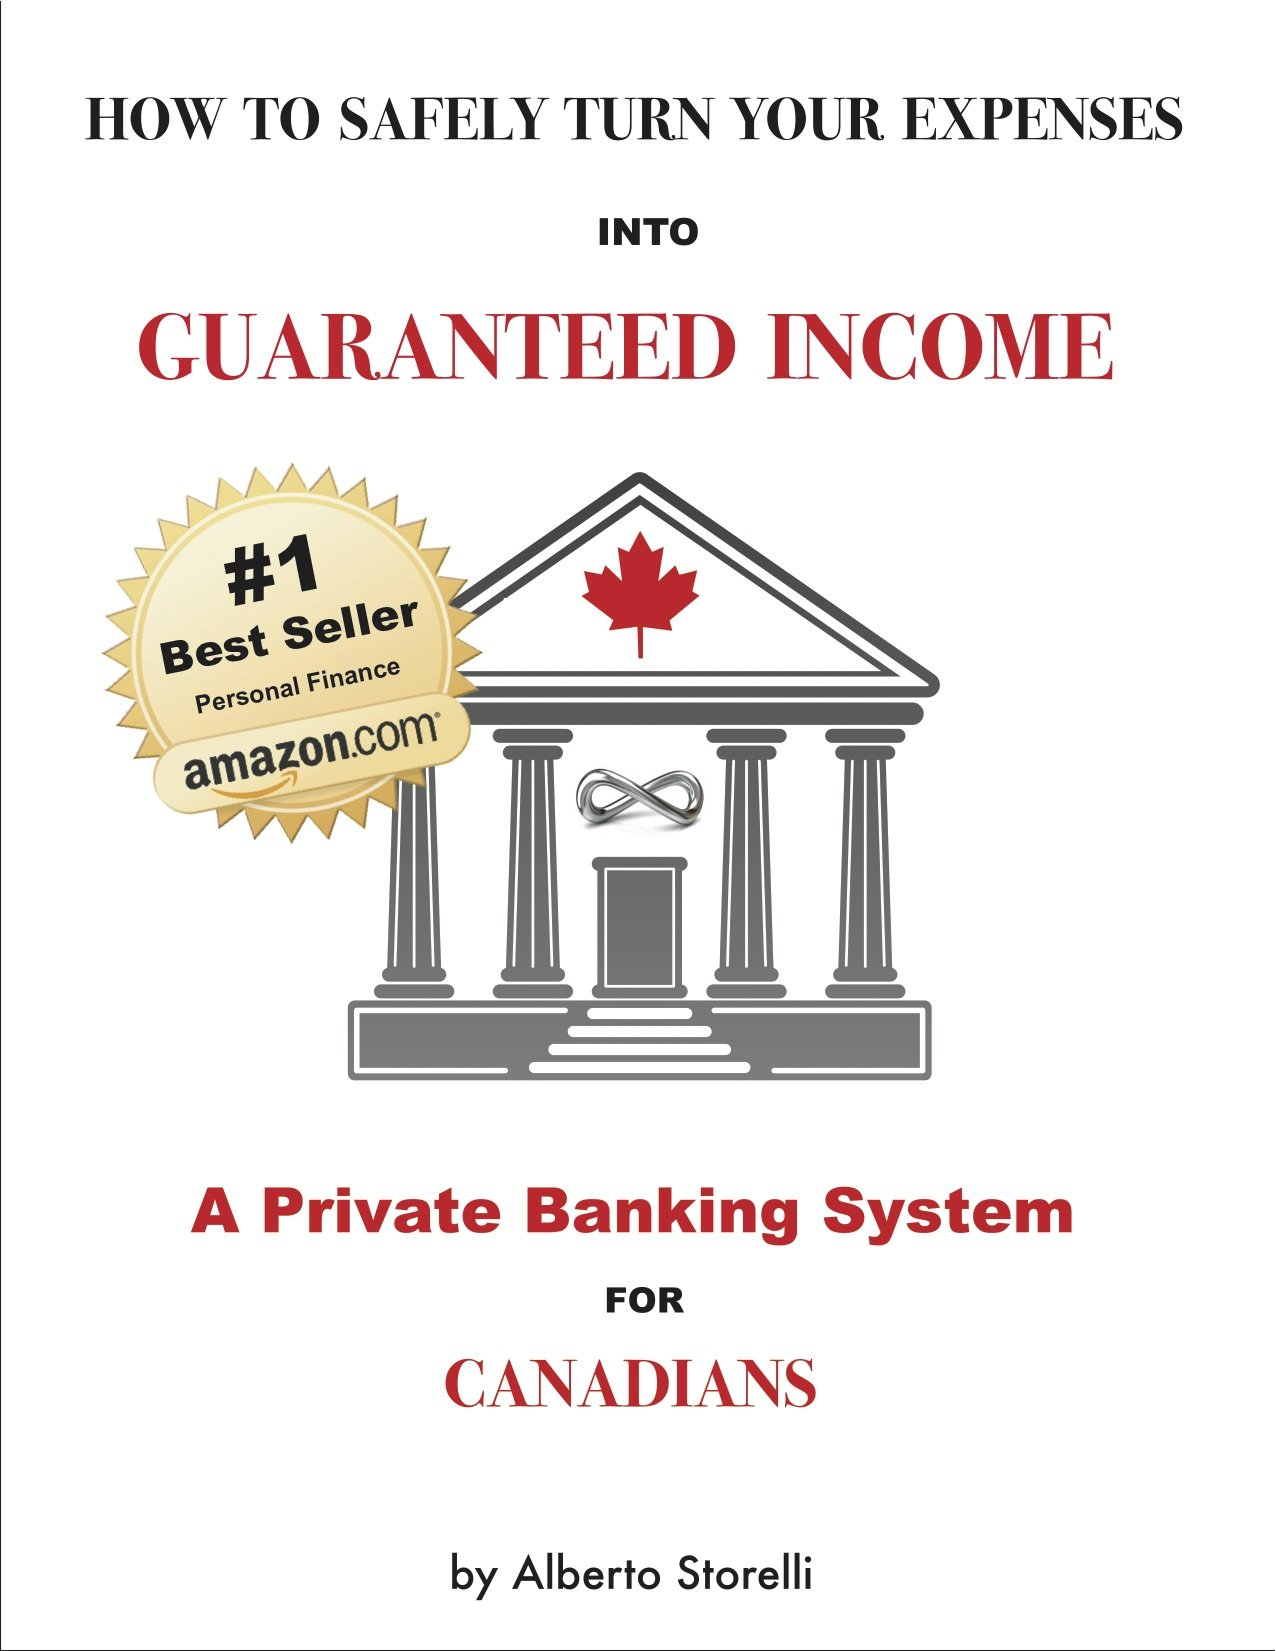 A Private Banking System For Canadians: How To Safely Turn Your Expenses Into Guaranteed Income